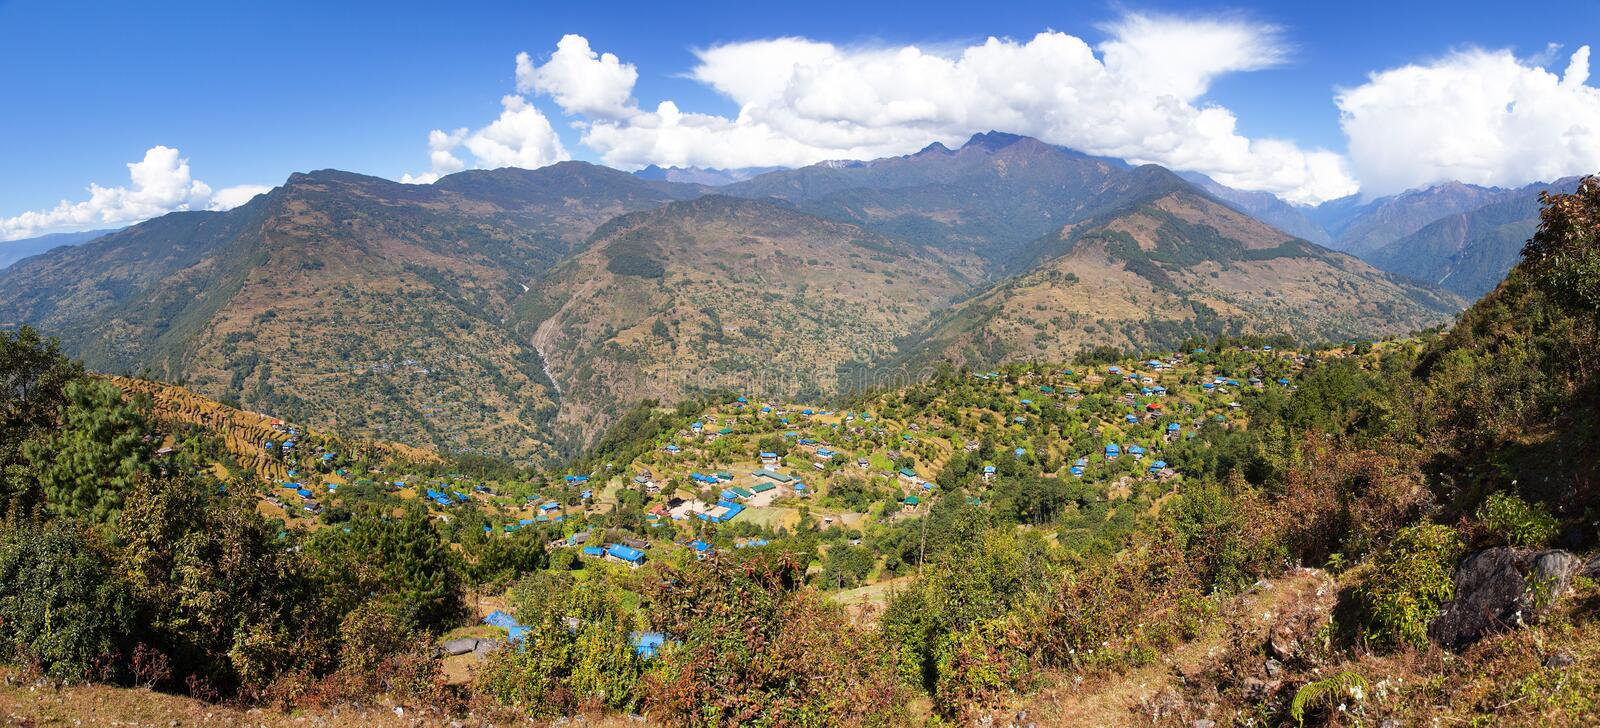 Villages de Gudel et de bondon, Himalaya du Népal photo stock